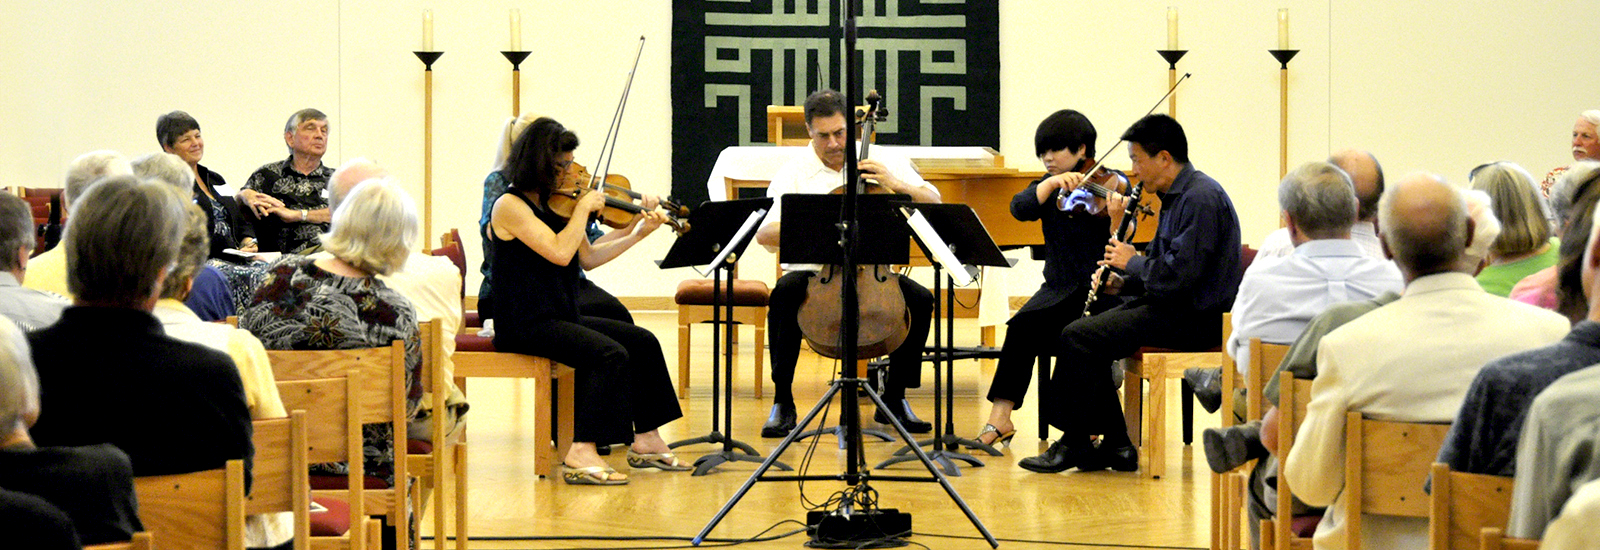 Bach Dancing & Dynamite Society performing at Holy Wisdom Monastery. Photo by Dick Ainsworth.